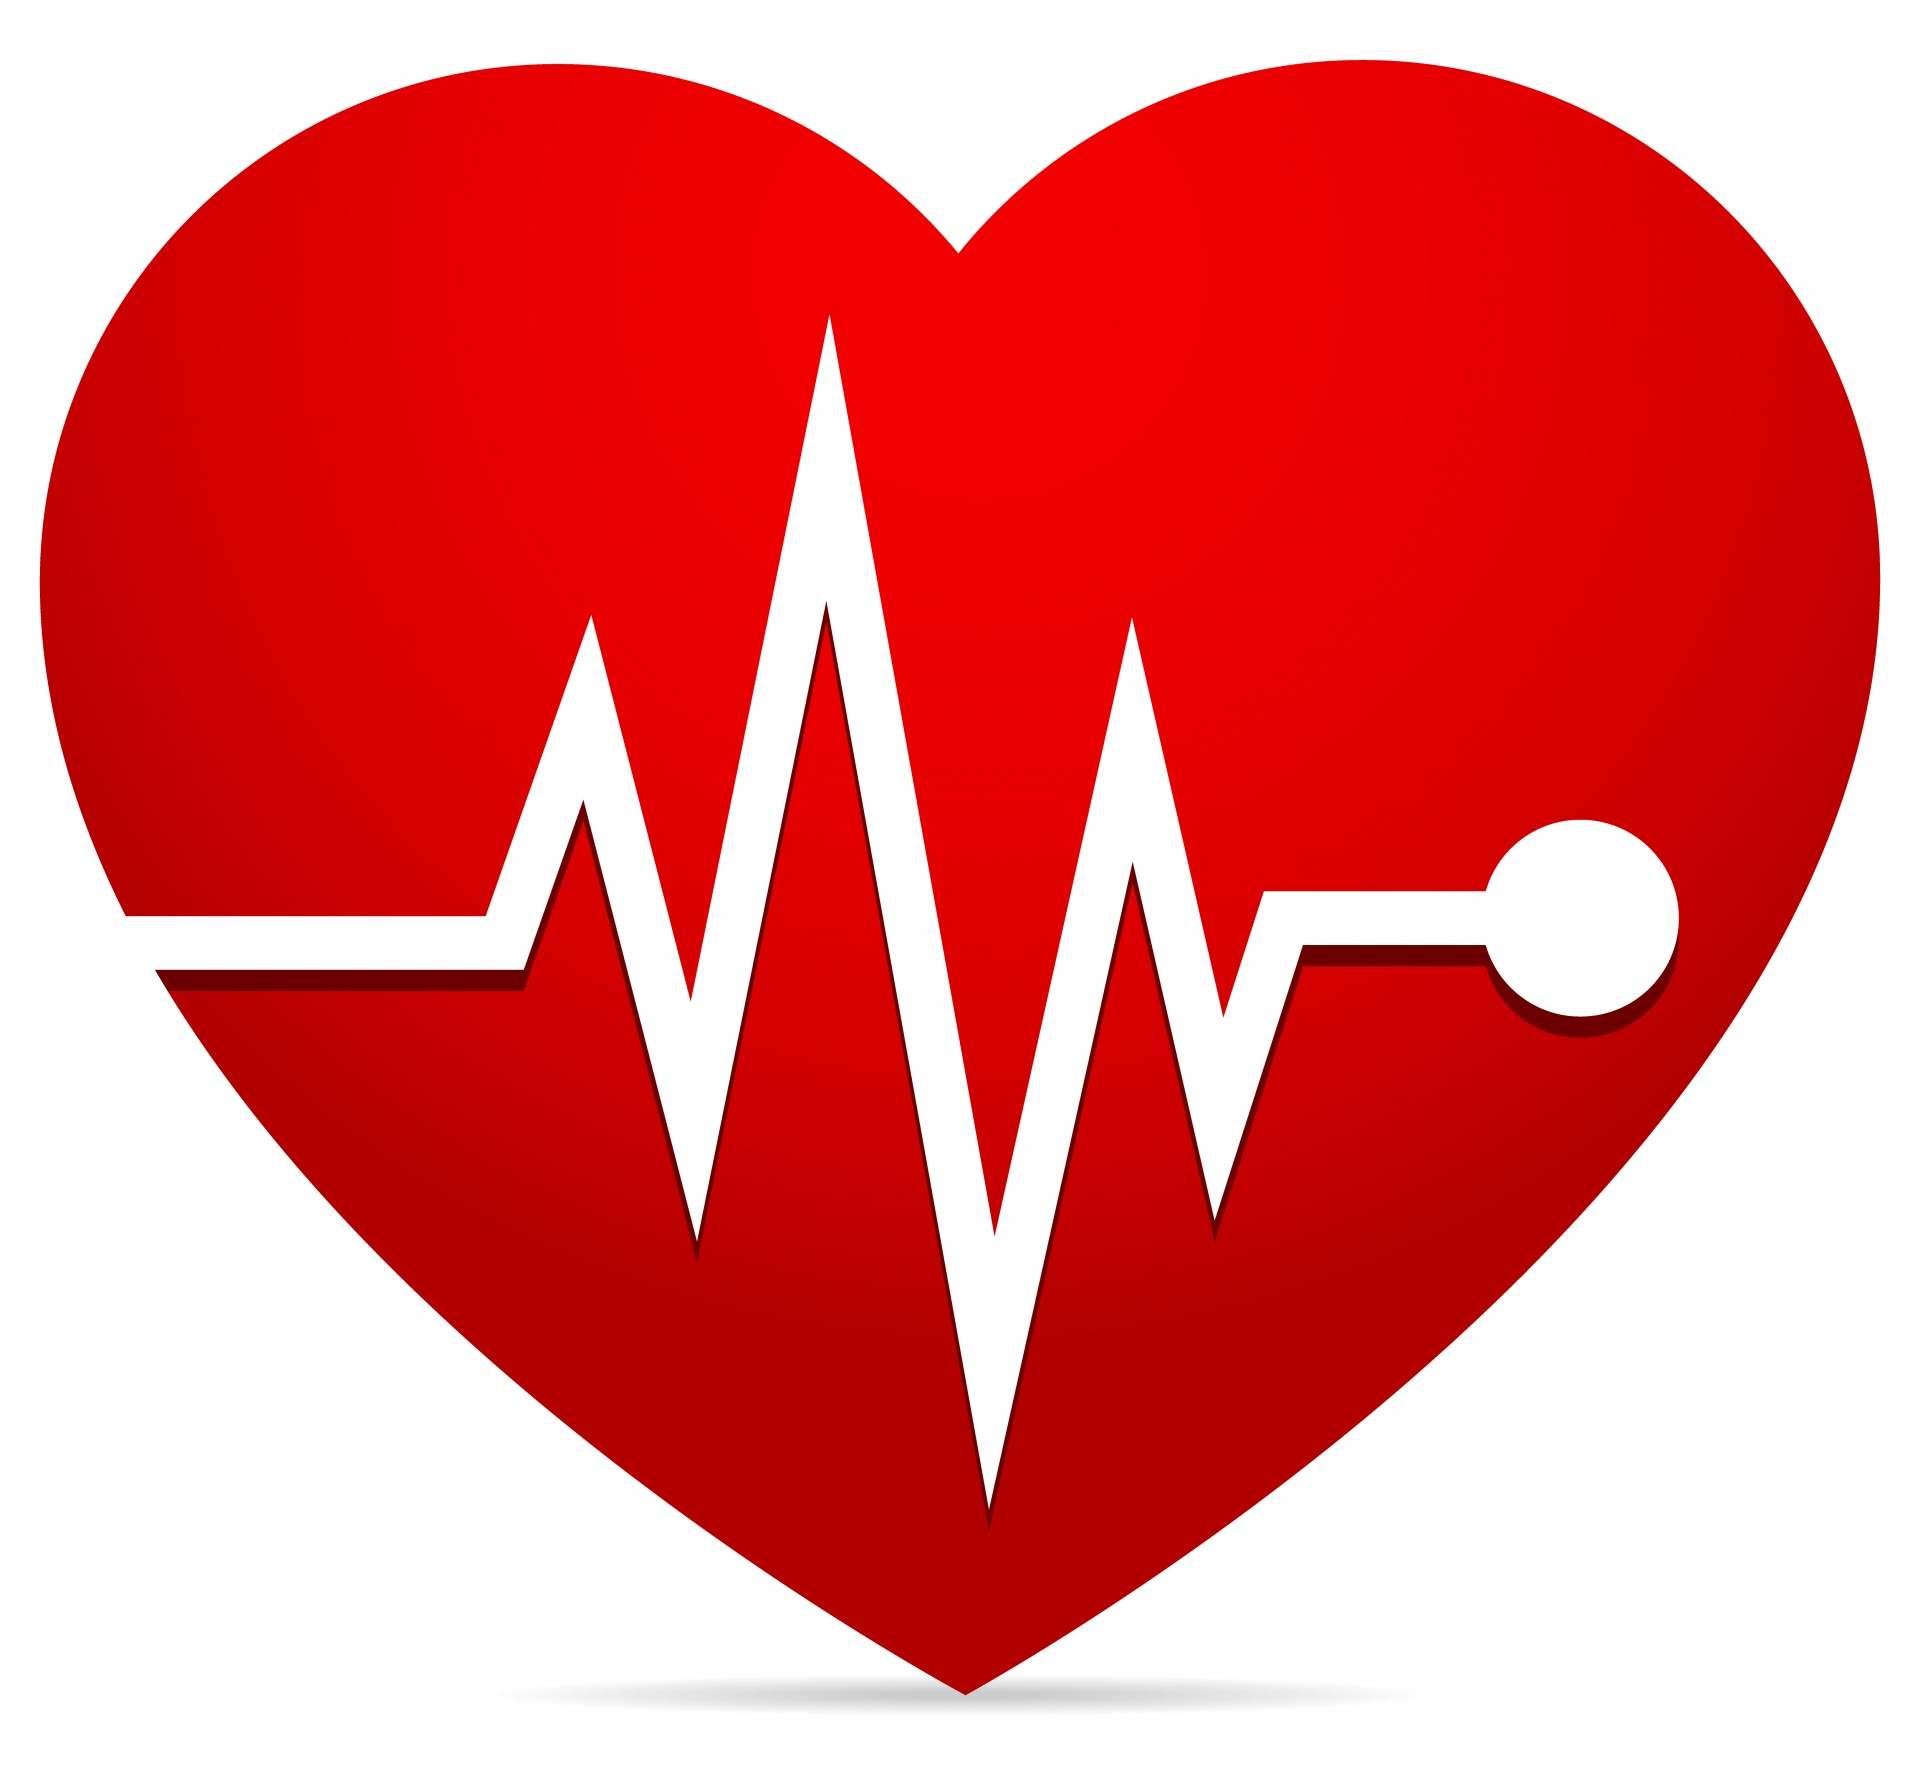 Heart Rate Ekg  Ecg  Heart Beat Free Stock Photo Hd   Public Domain